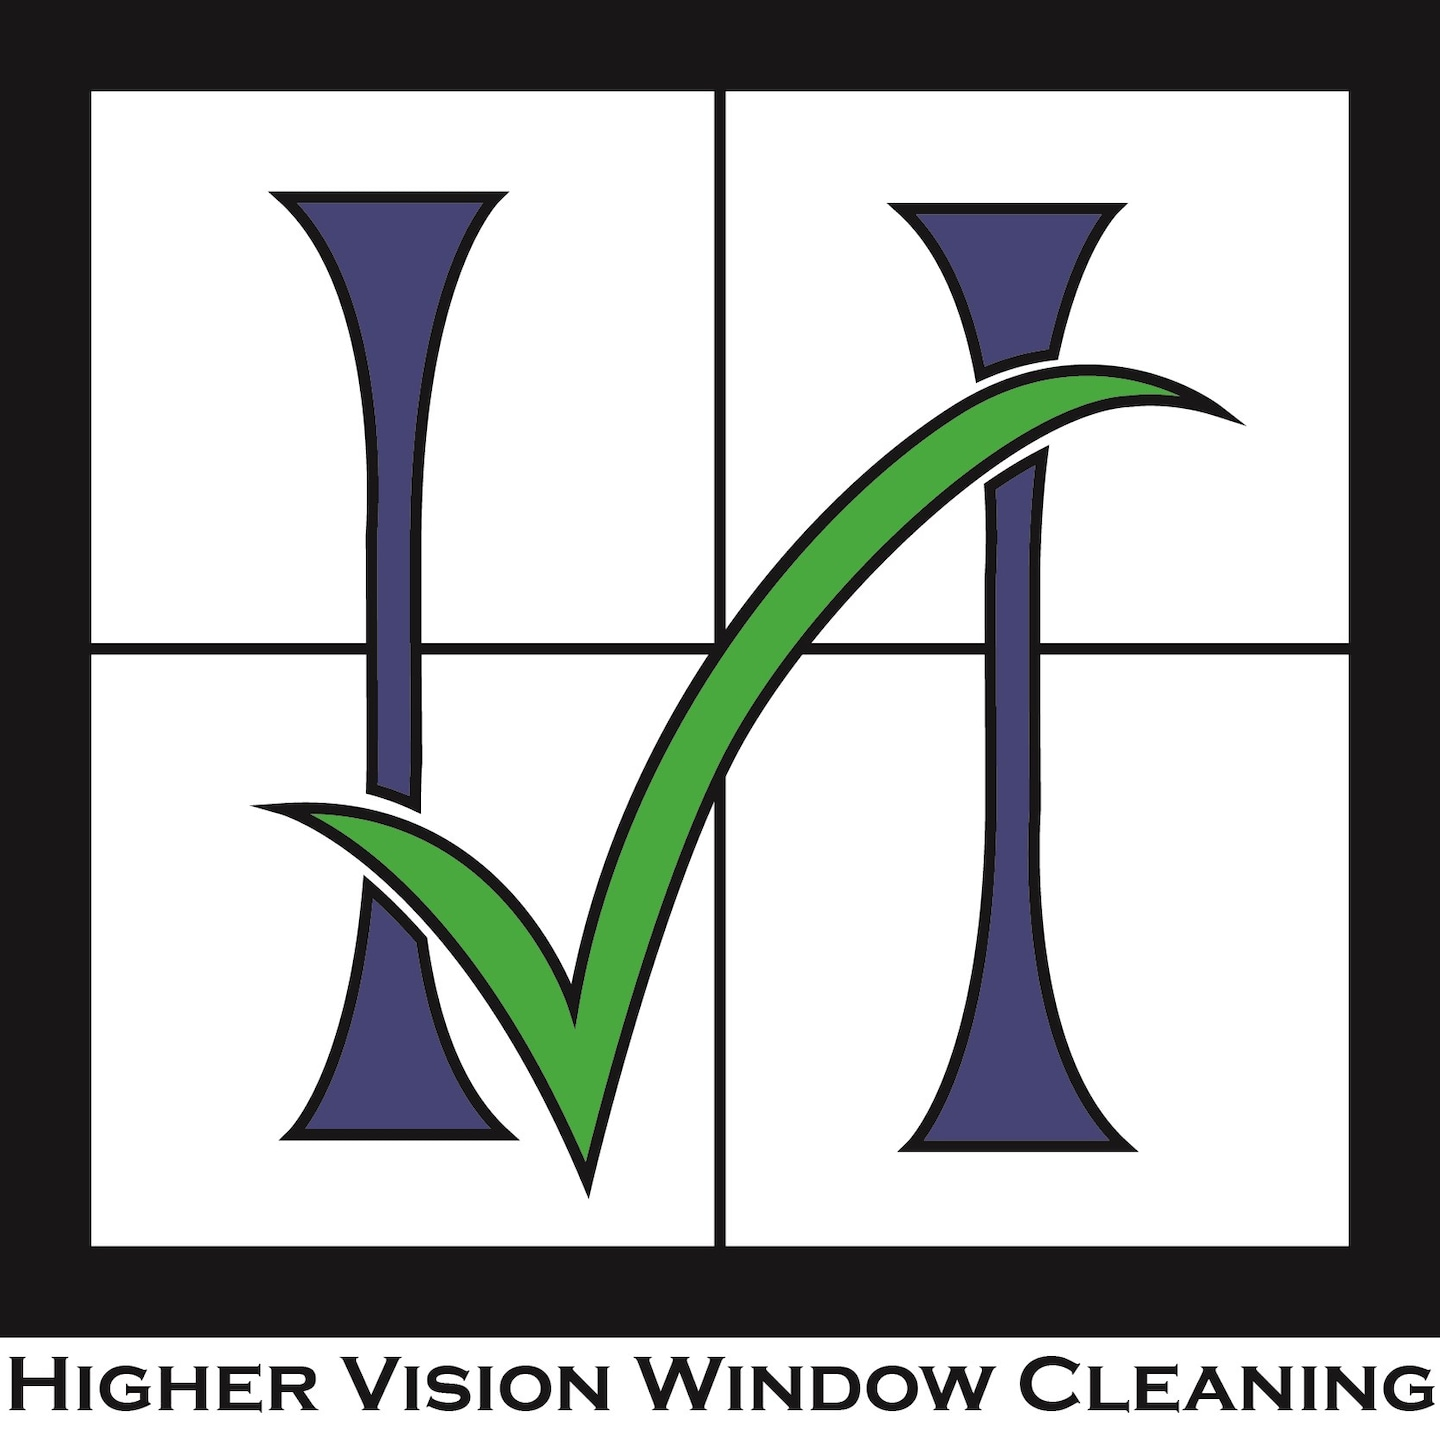 Higher Vision Window Cleaning